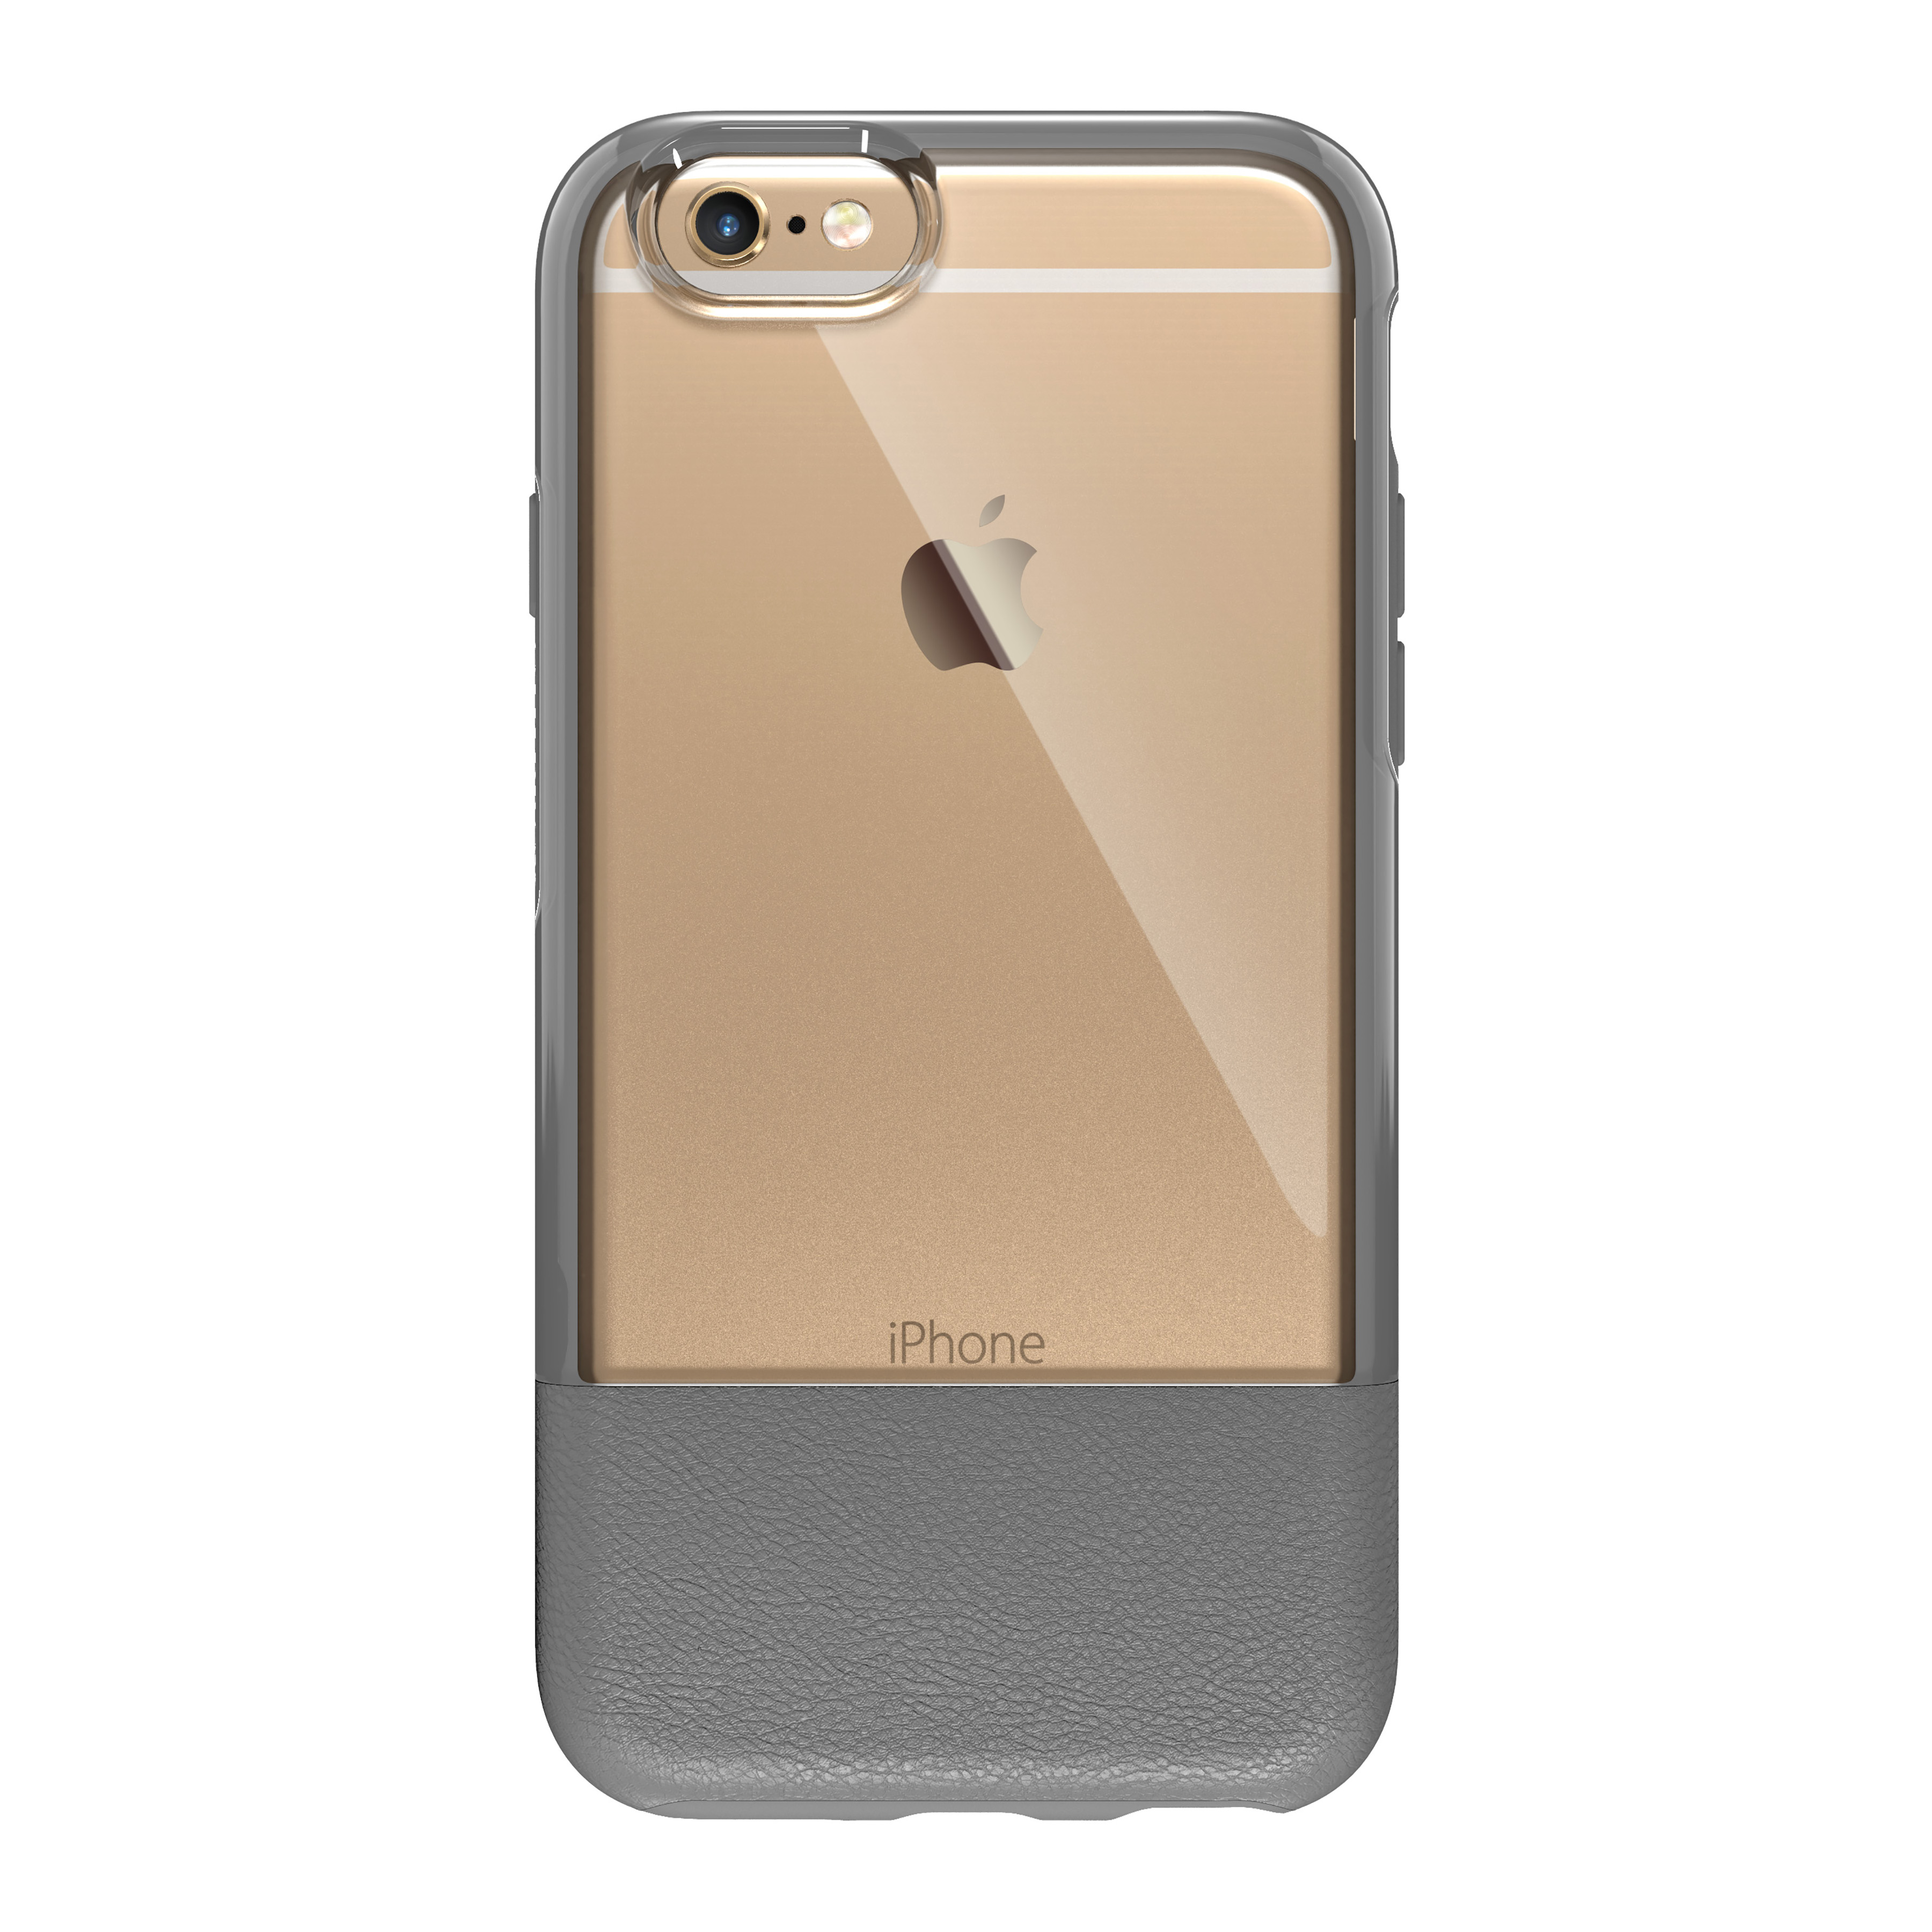 OtterBox Statement Series Case for iPhone 6 Plus/6s Plus